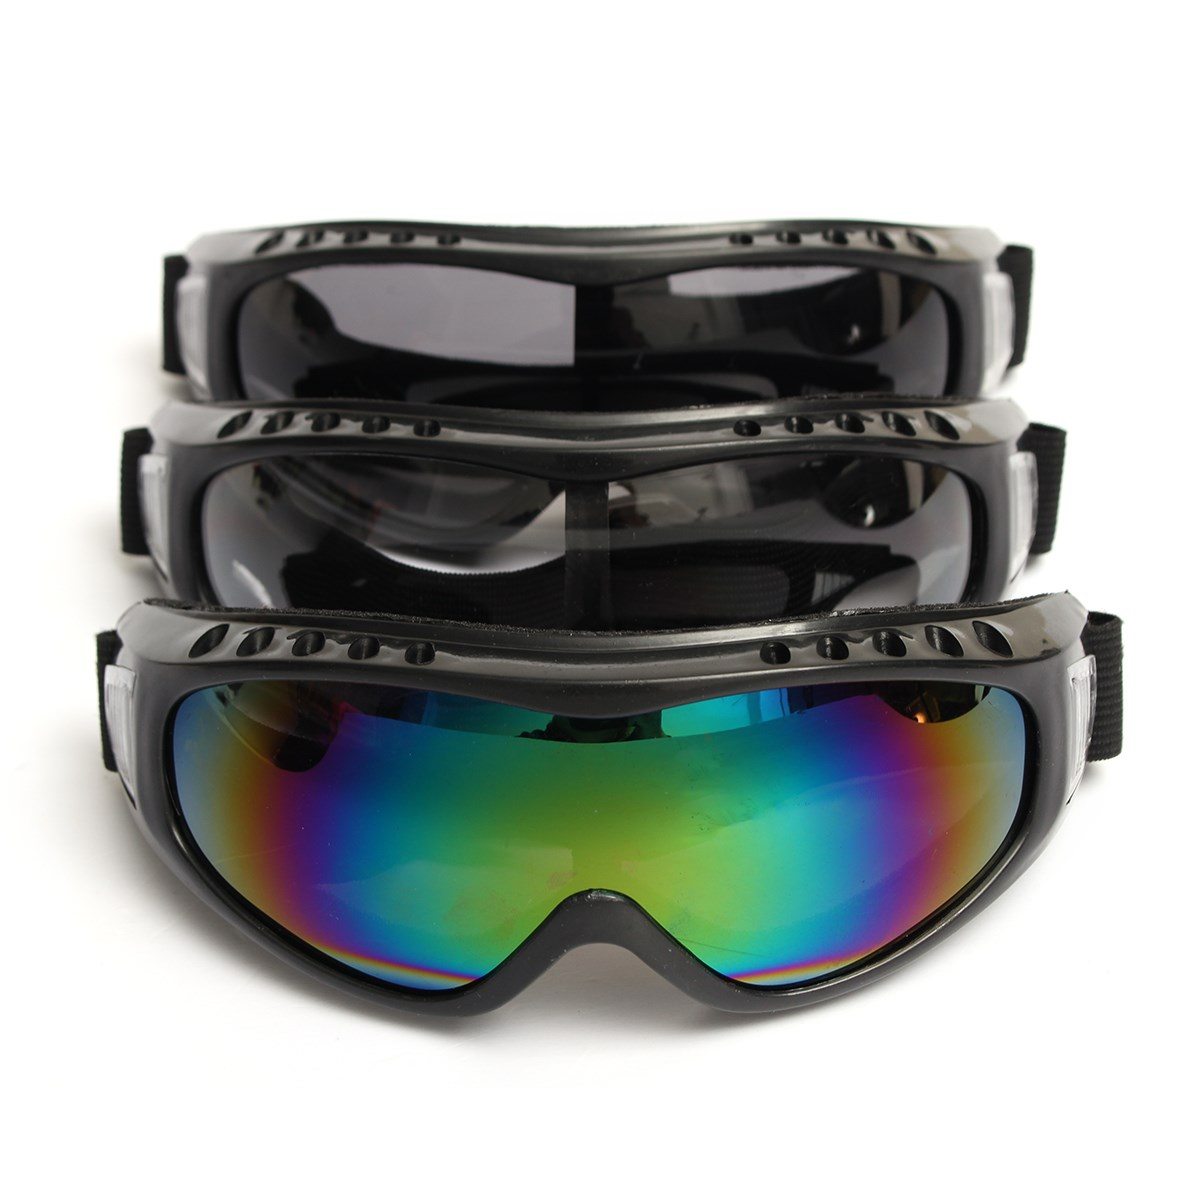 Outdoor Sport Motocross ATV Dirt Bike Off Road Racing Goggles Motorcycle Glasses Surfing Dustproof